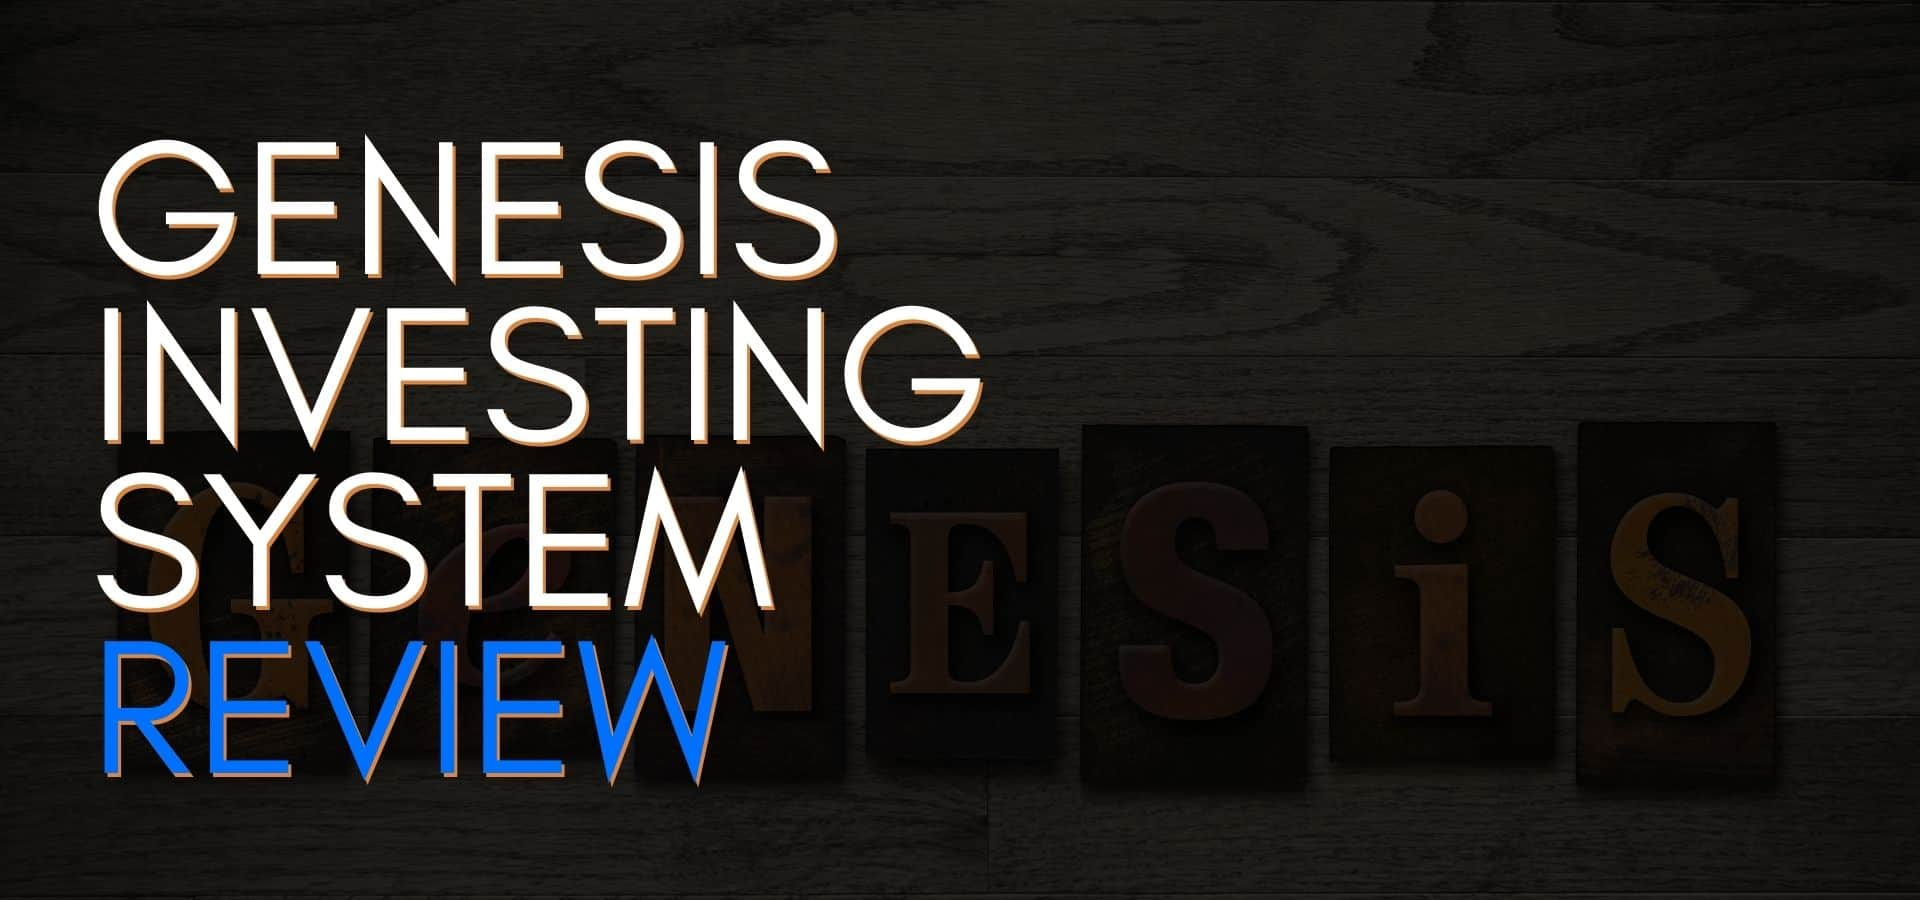 Genesis Investing System Review – Is It Just Another Scam?